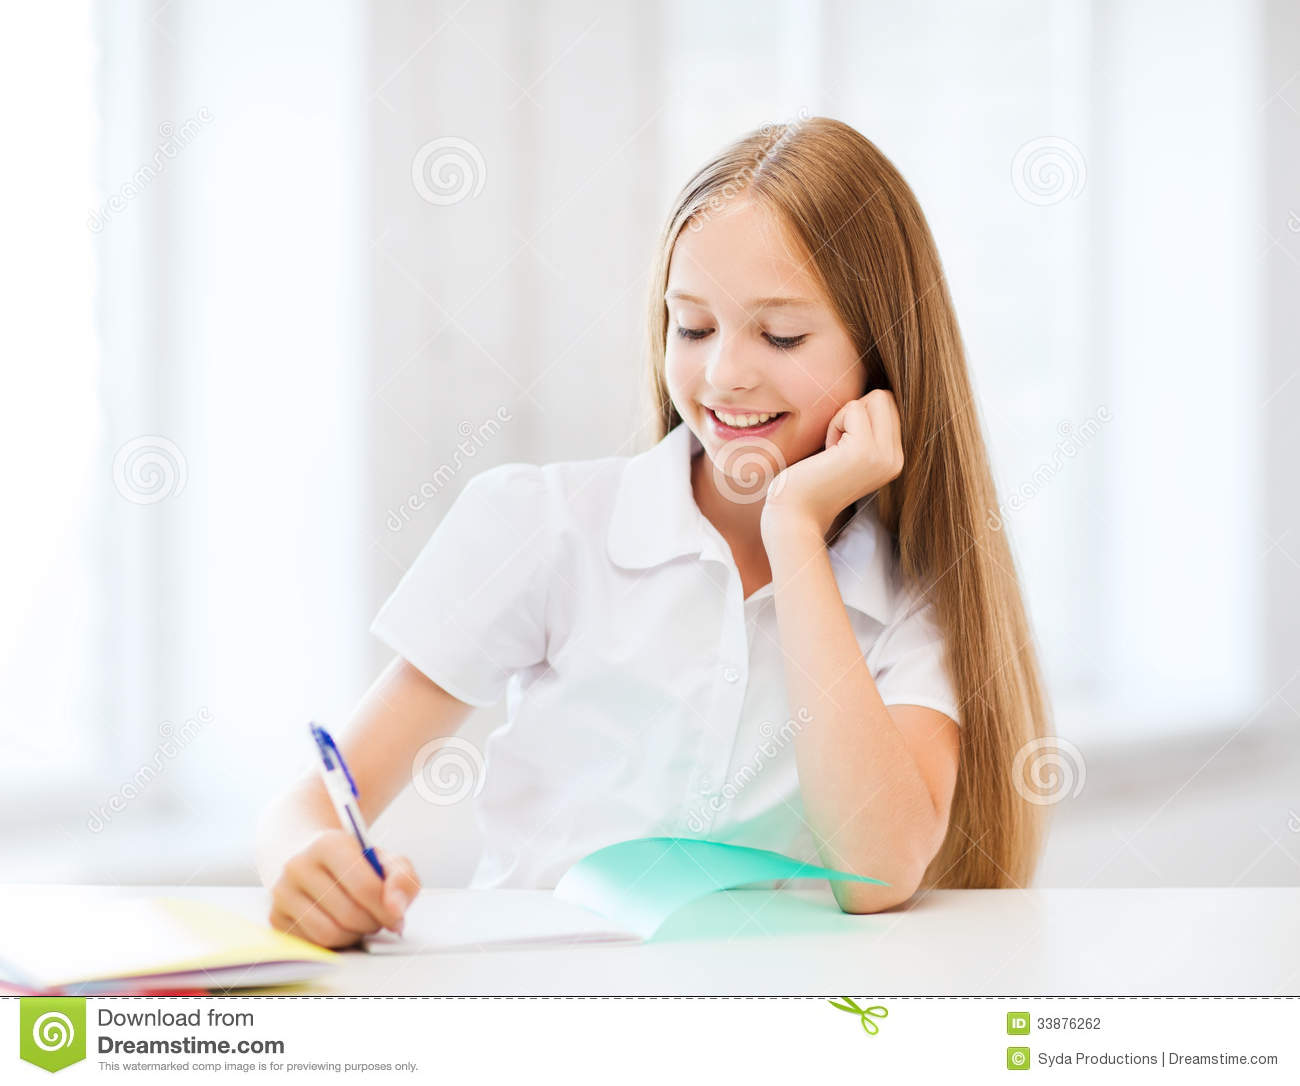 Schools Education6 25 18students: Student Girl Studying At School Stock Photo